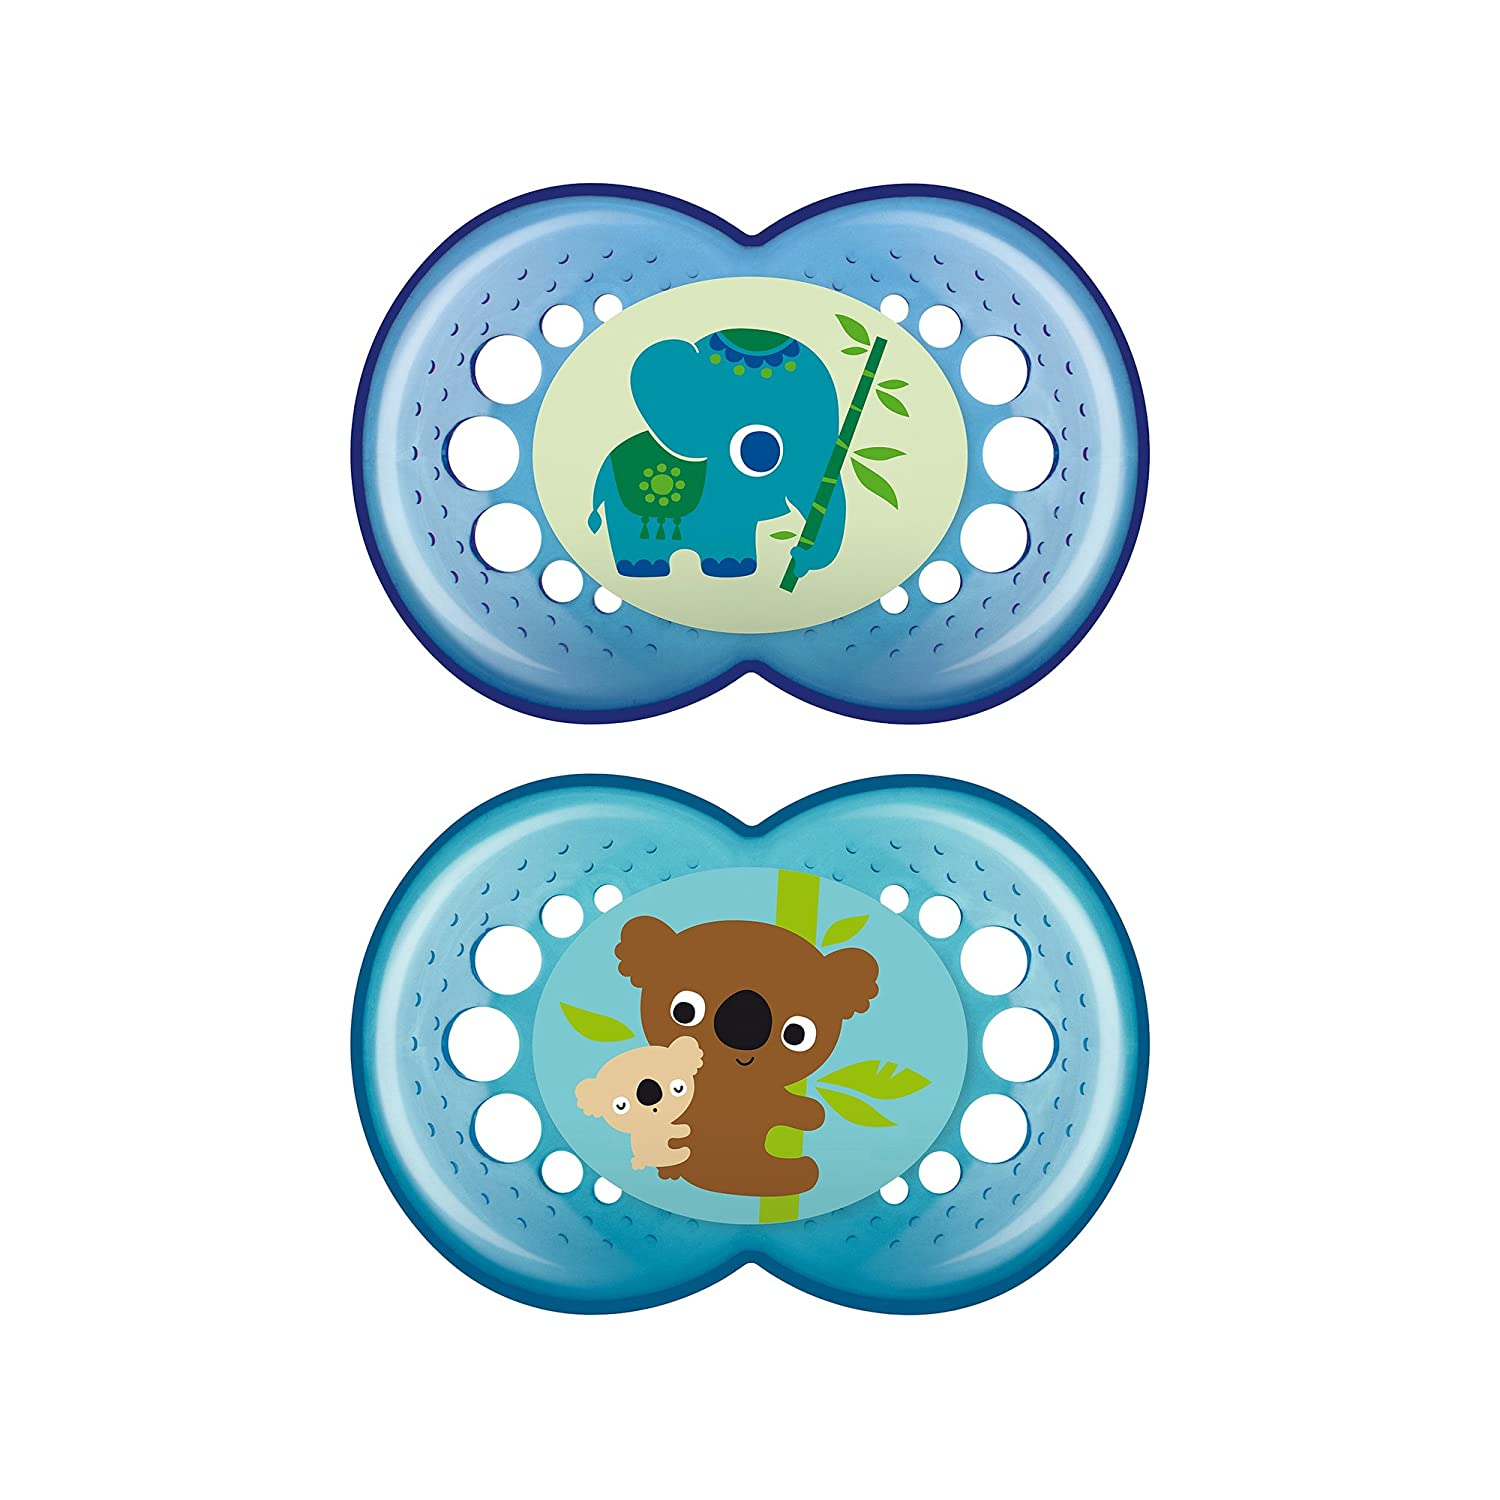 MAM Silicone Crystal Pacifier, Boy, 6 Plus Months, 2-Count, (For Boy) C2944-024-4-1